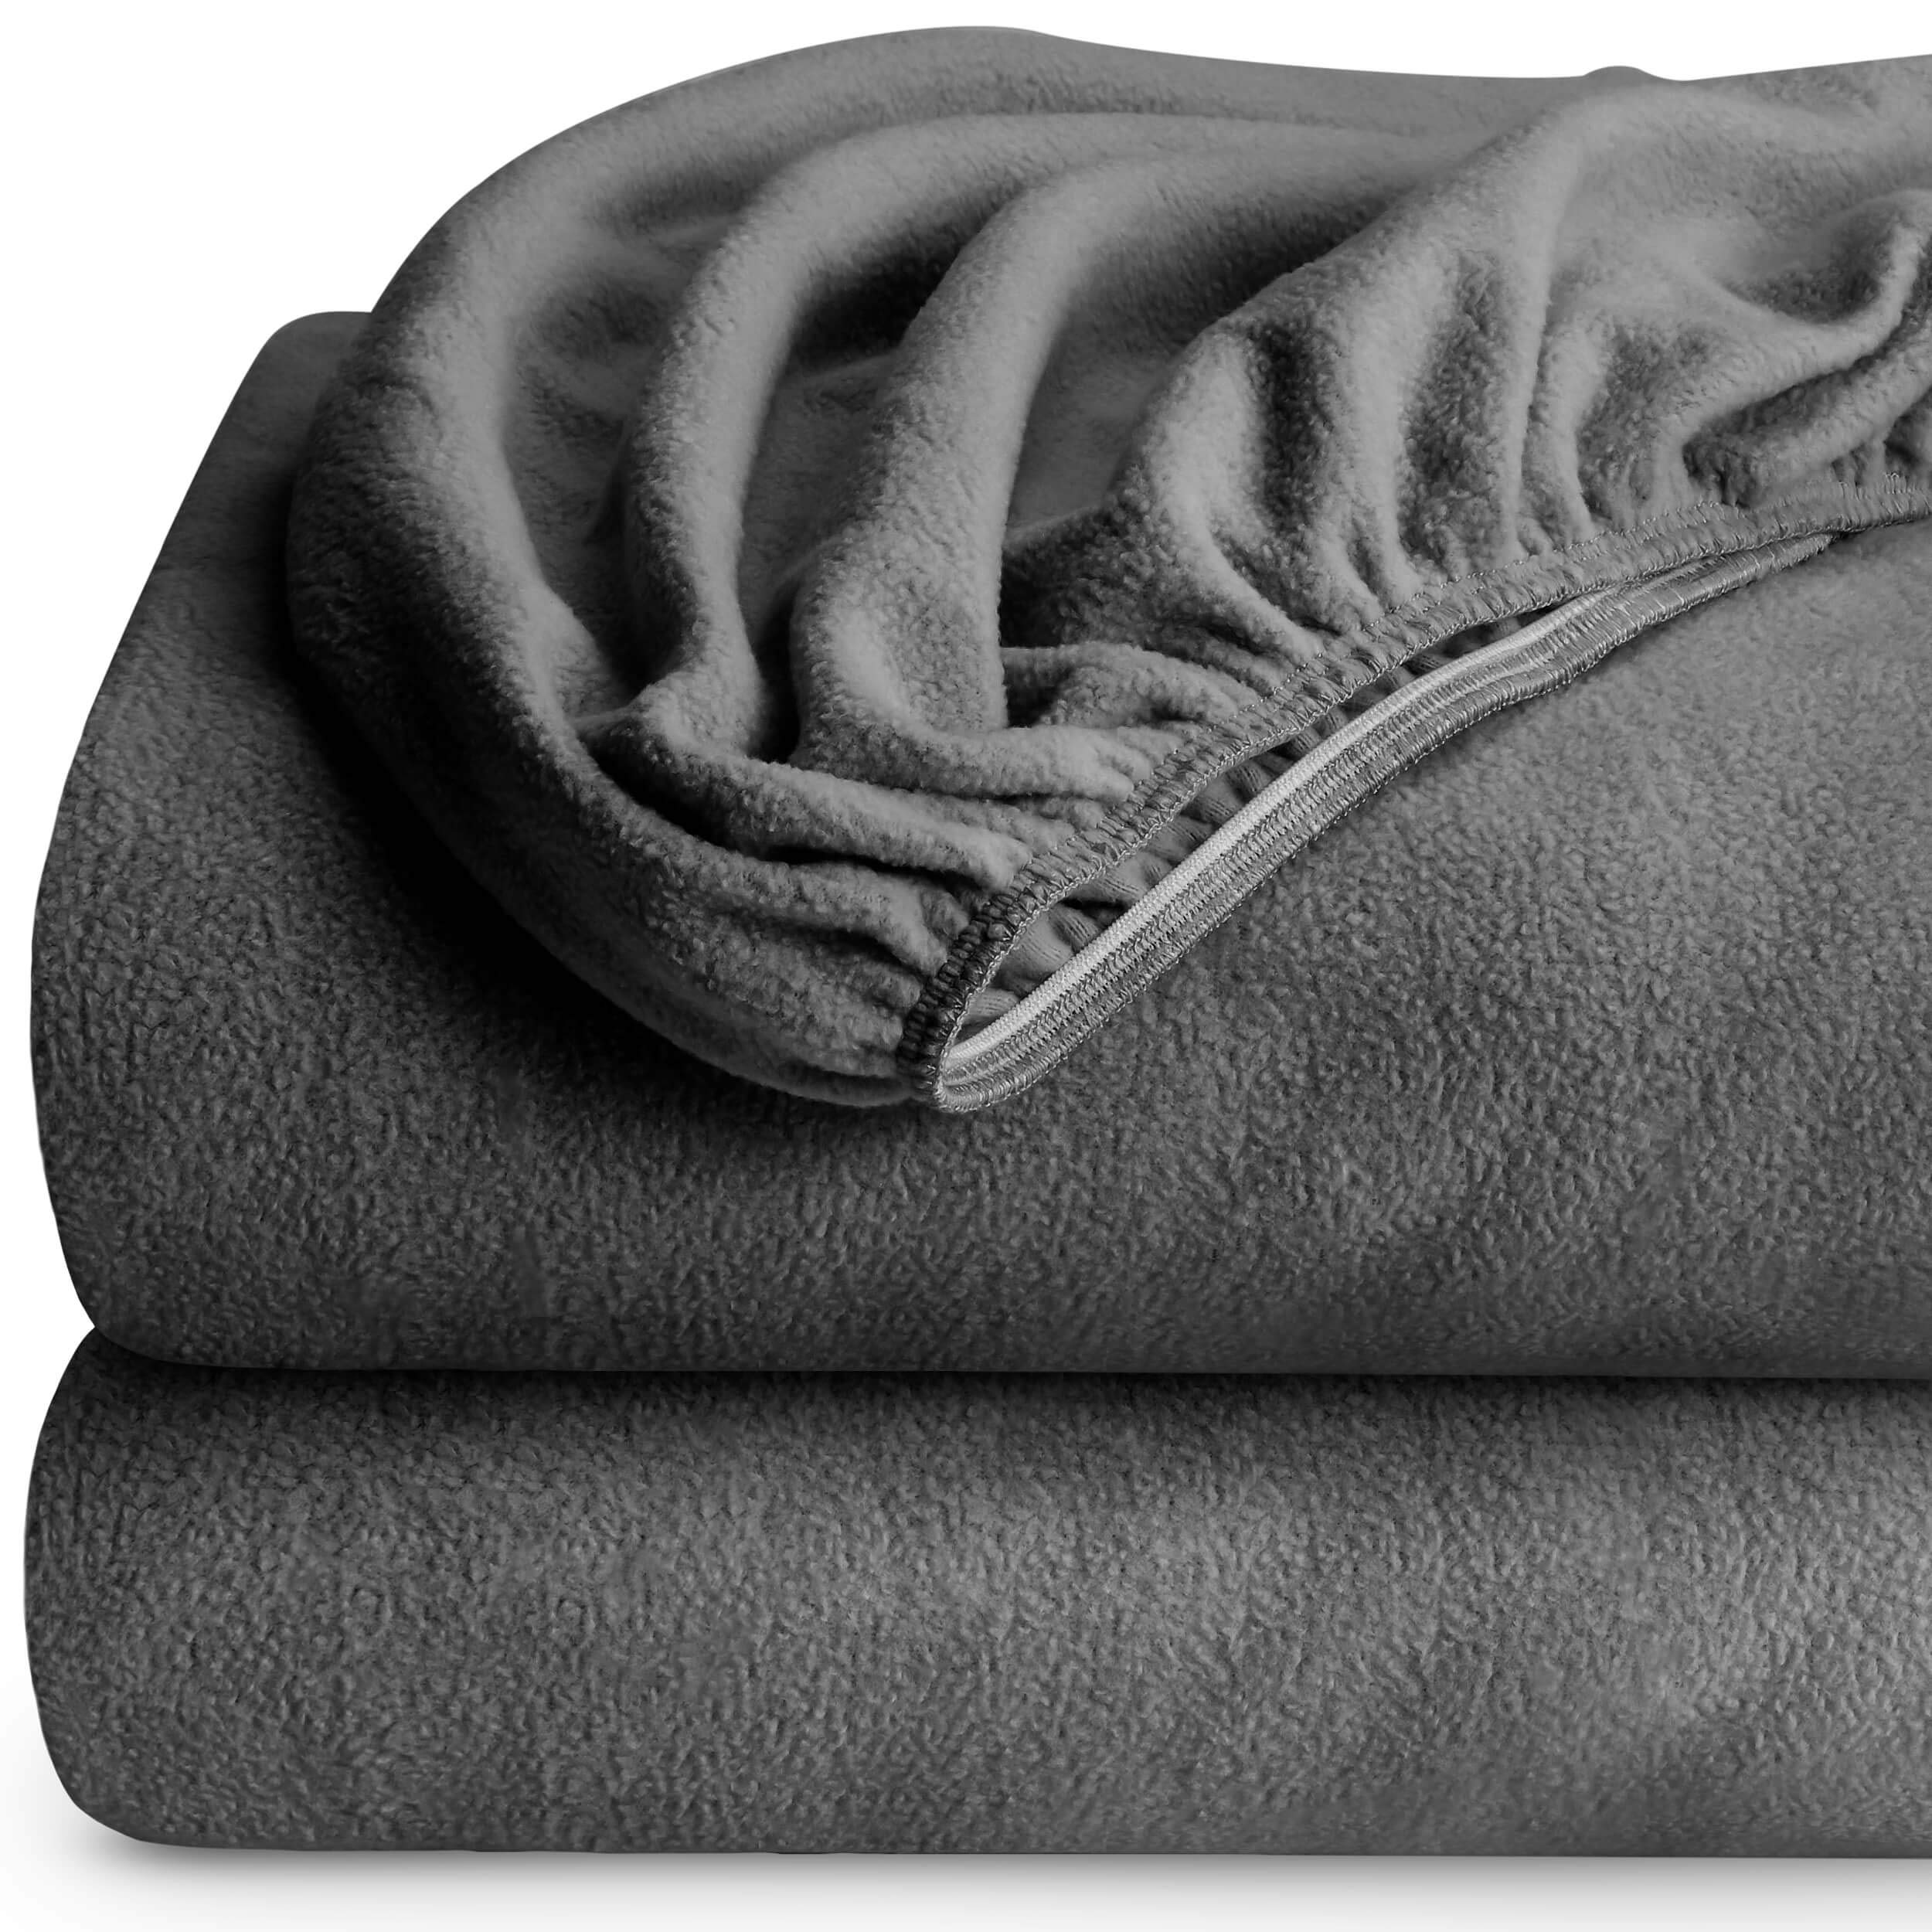 Bare Home Super Soft Fleece Fitted Sheet - Twin Size (2 Pack) - Extra Plush Polar Fleece, Pill Resistant - Deep Pocket - All Season Cozy Warmth, Breathable & Hypoallergenic (Twin, Grey)